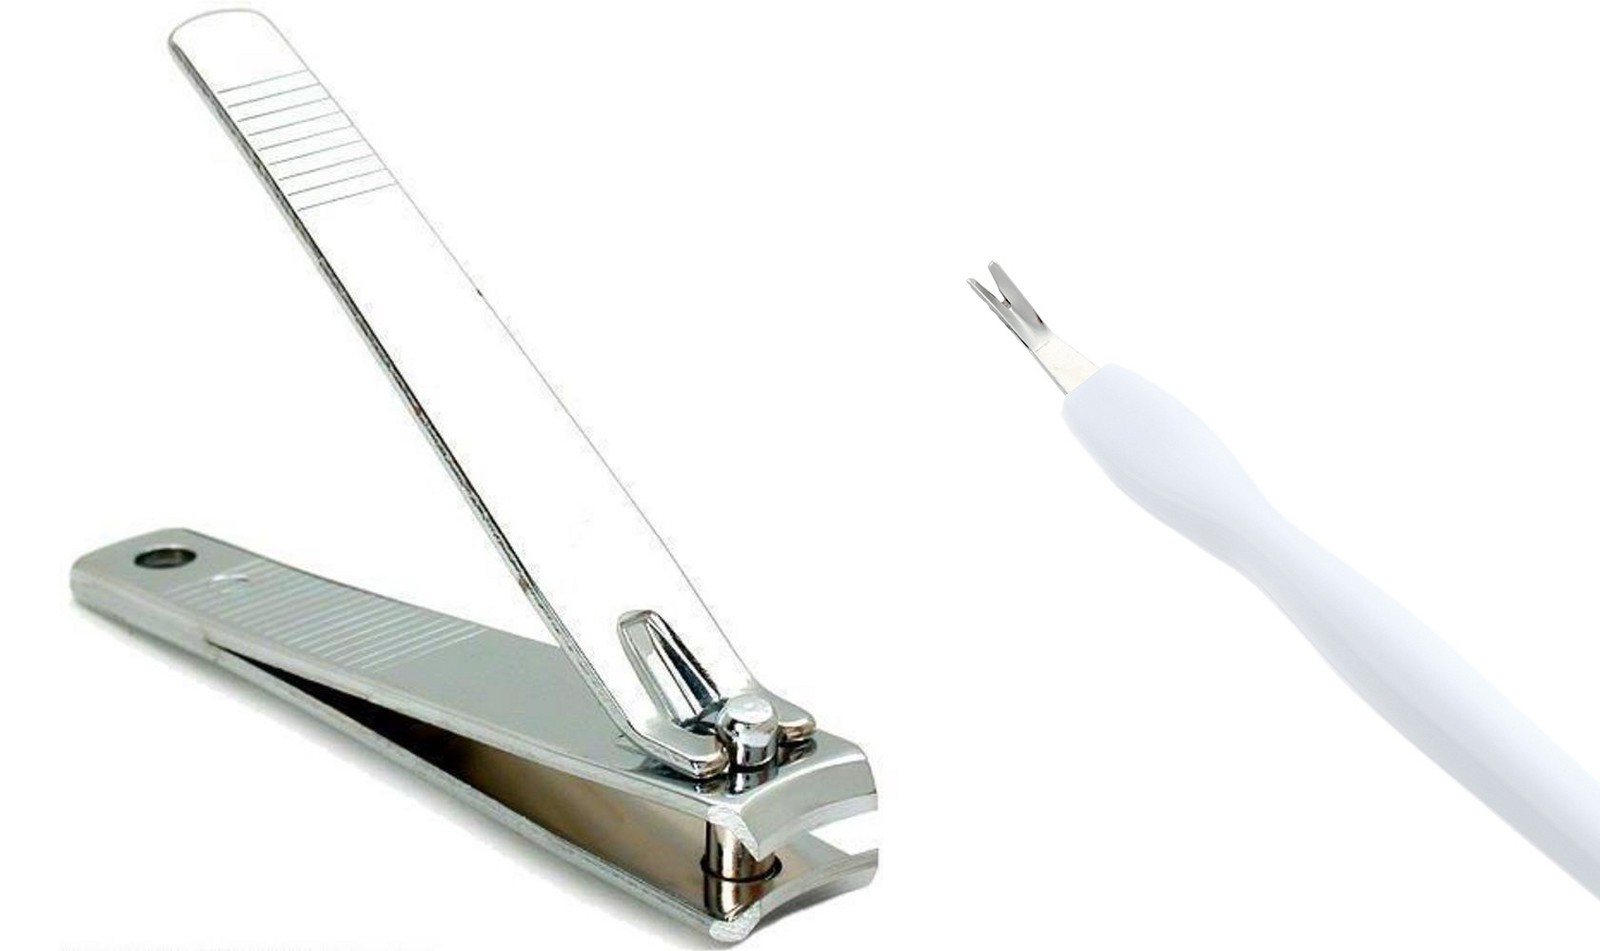 Nail Clipper With Built-in Cuticle Trimmer — (Idea 71 of 365)